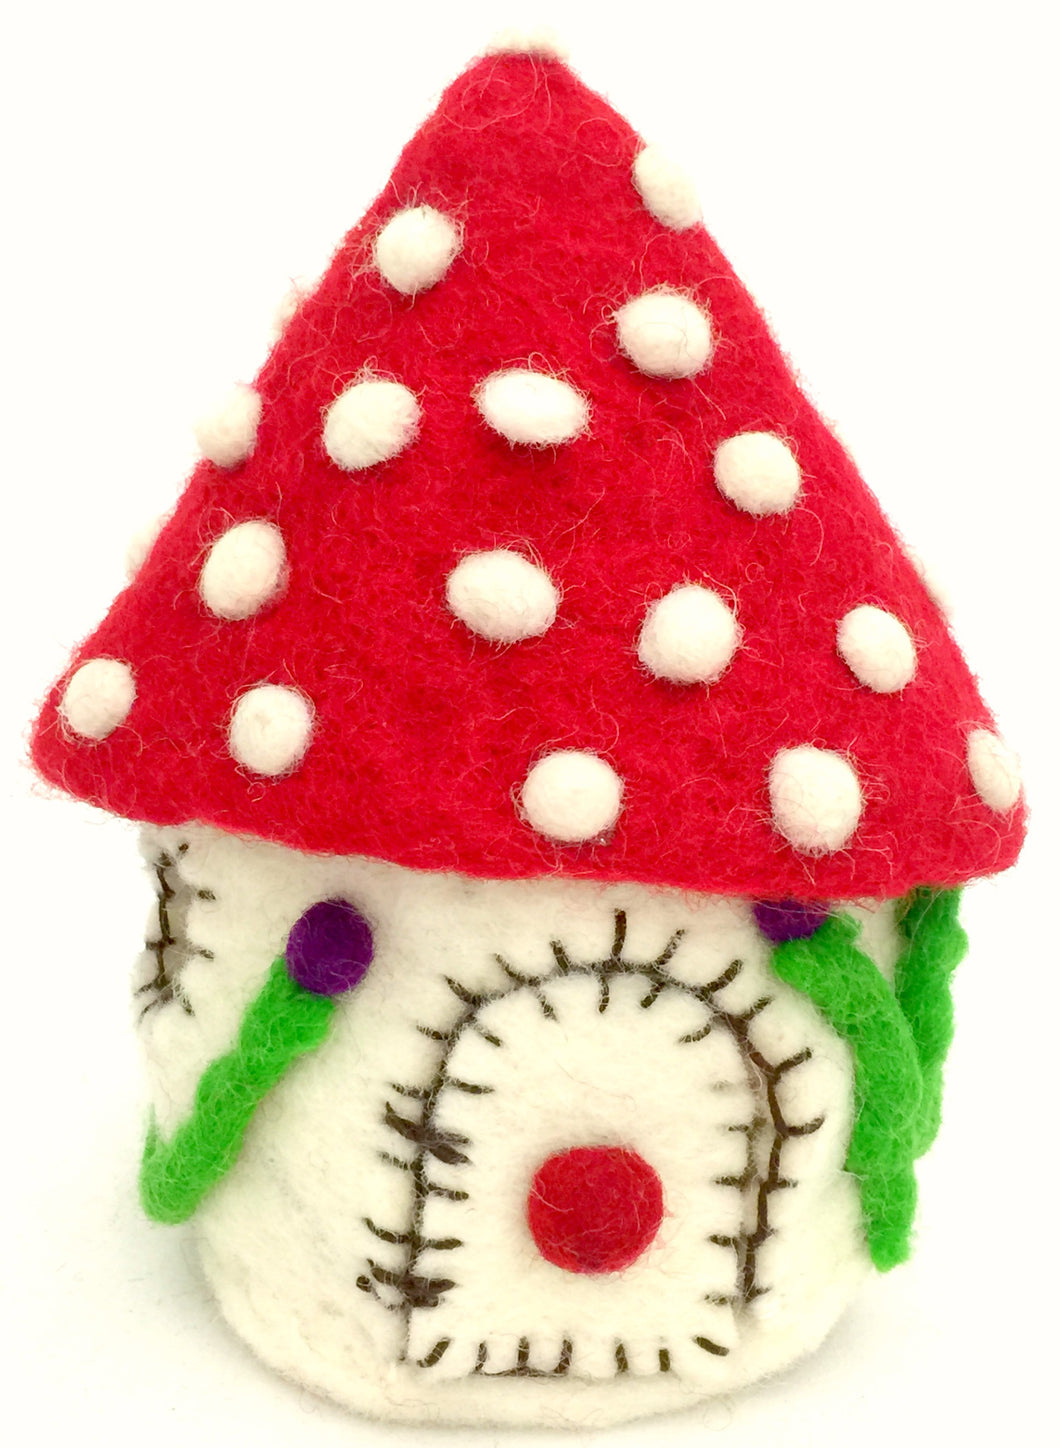 Toadstool spirit tiny faery home